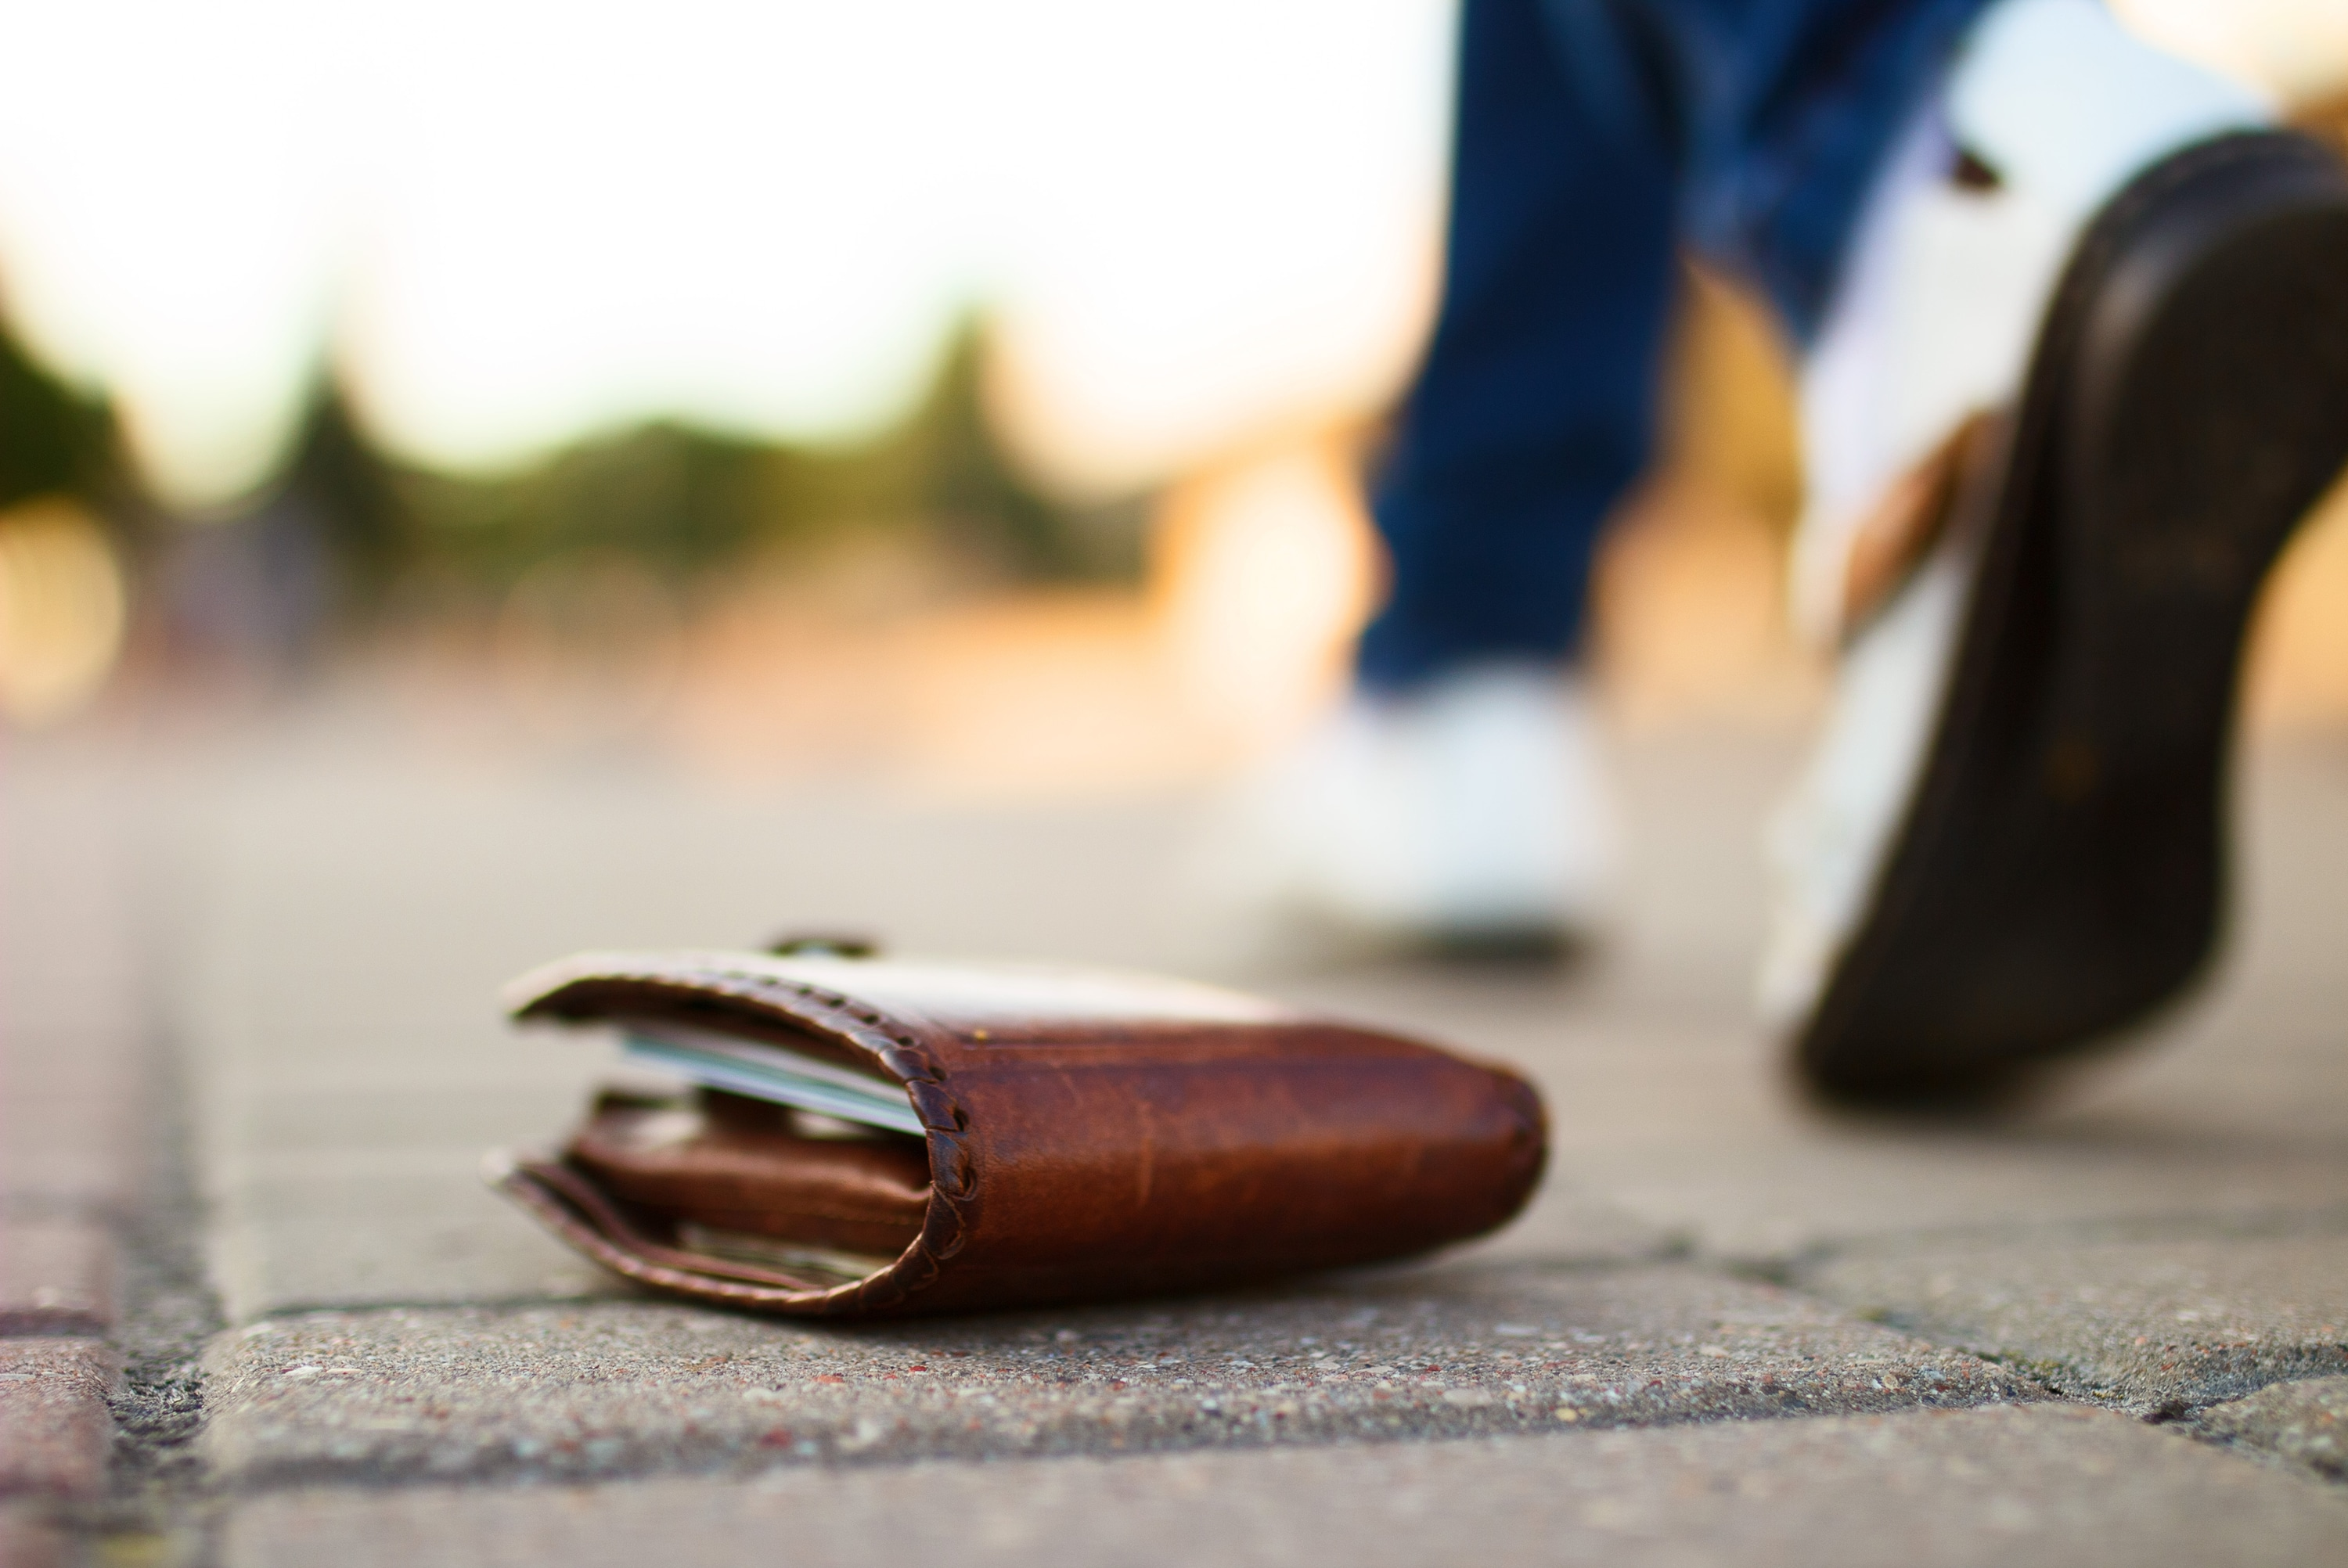 What to Do If Your Wallet or Purse Is Lost or Stolen